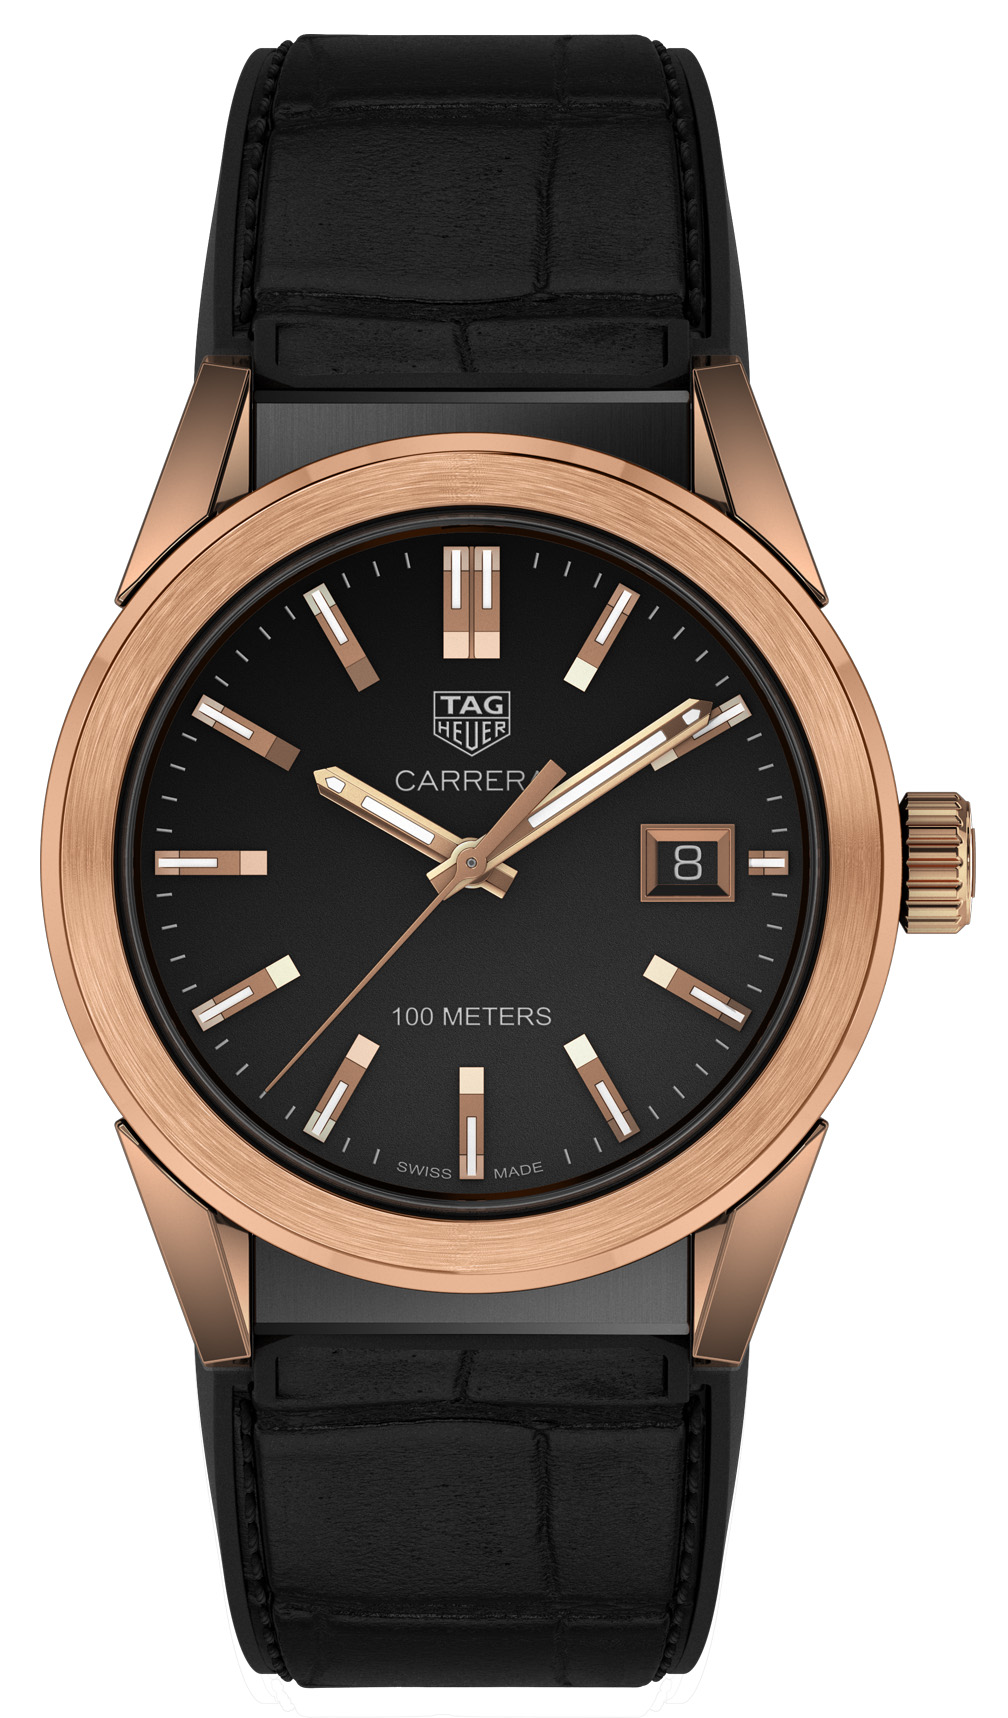 spacex tag watch rose gold - HD